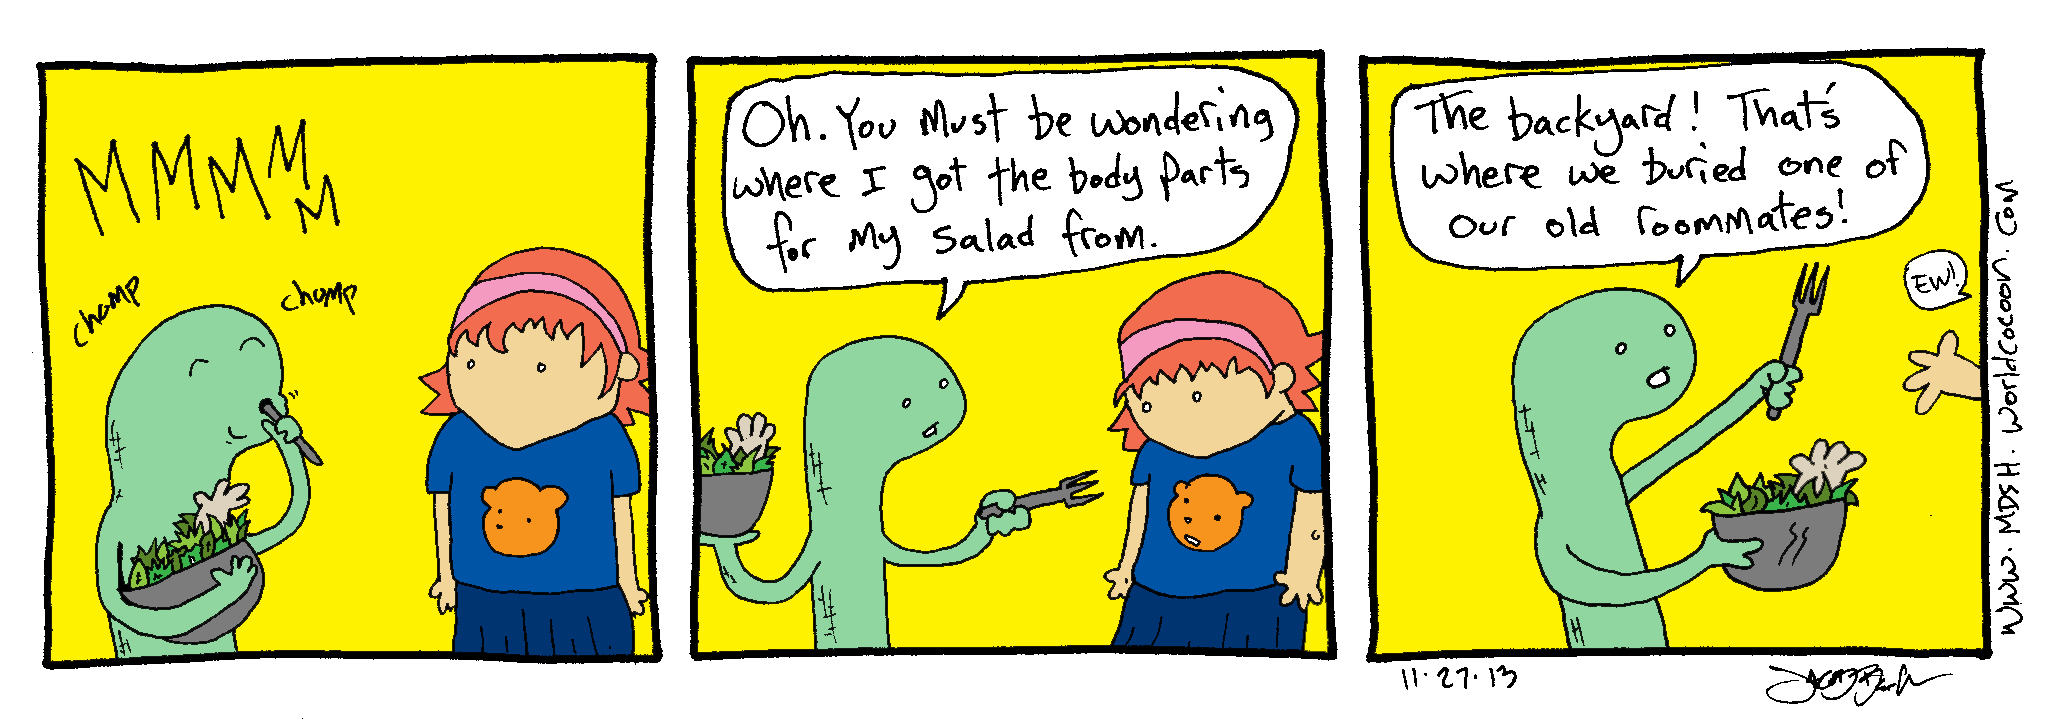 11/27/2013 – come to the salad